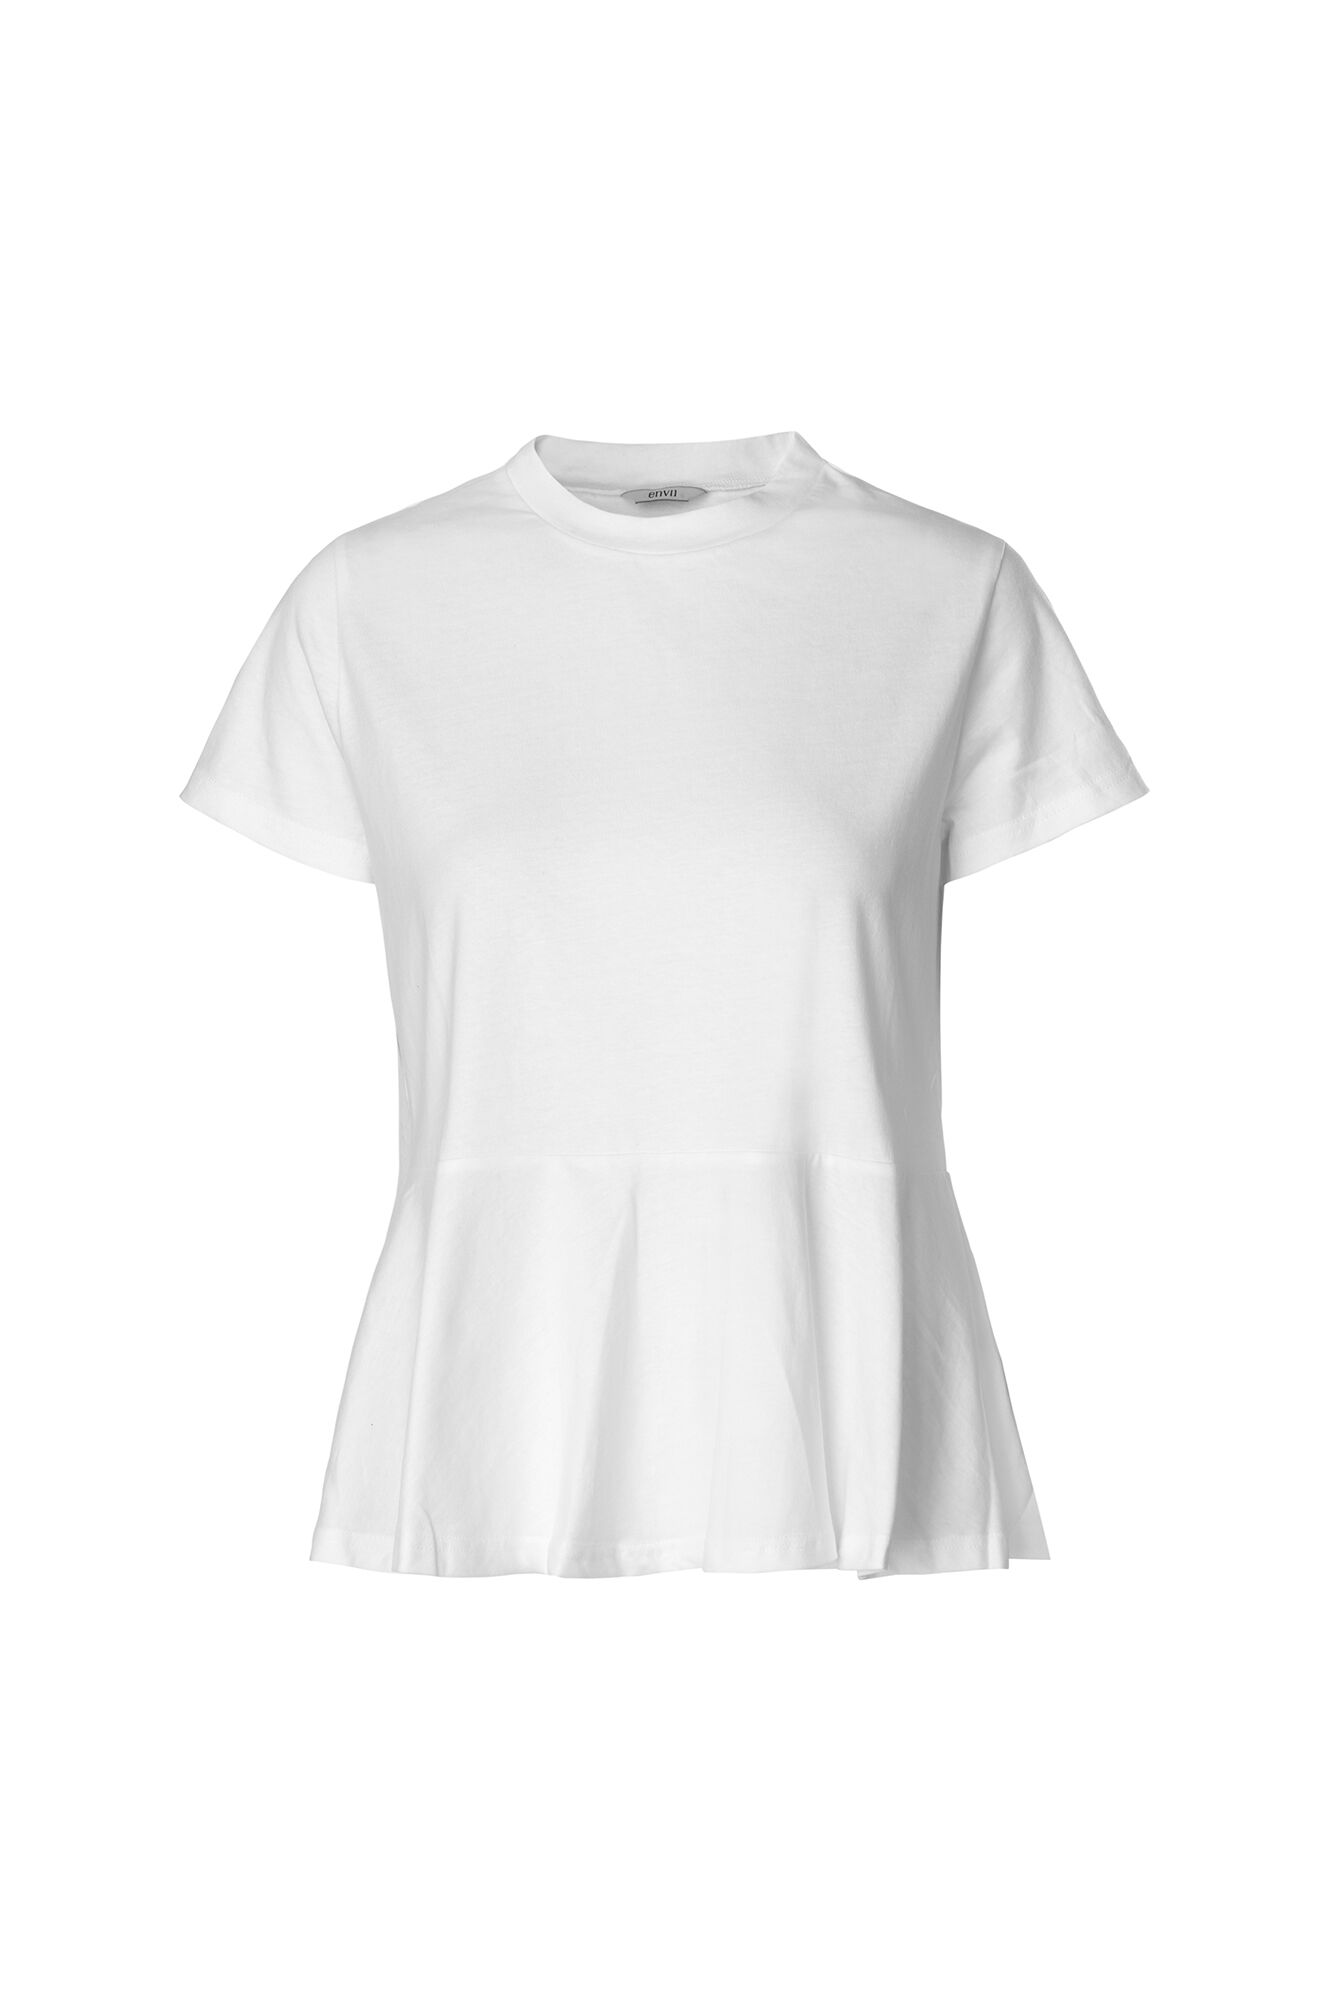 ENVICTORY SS TEE 5867